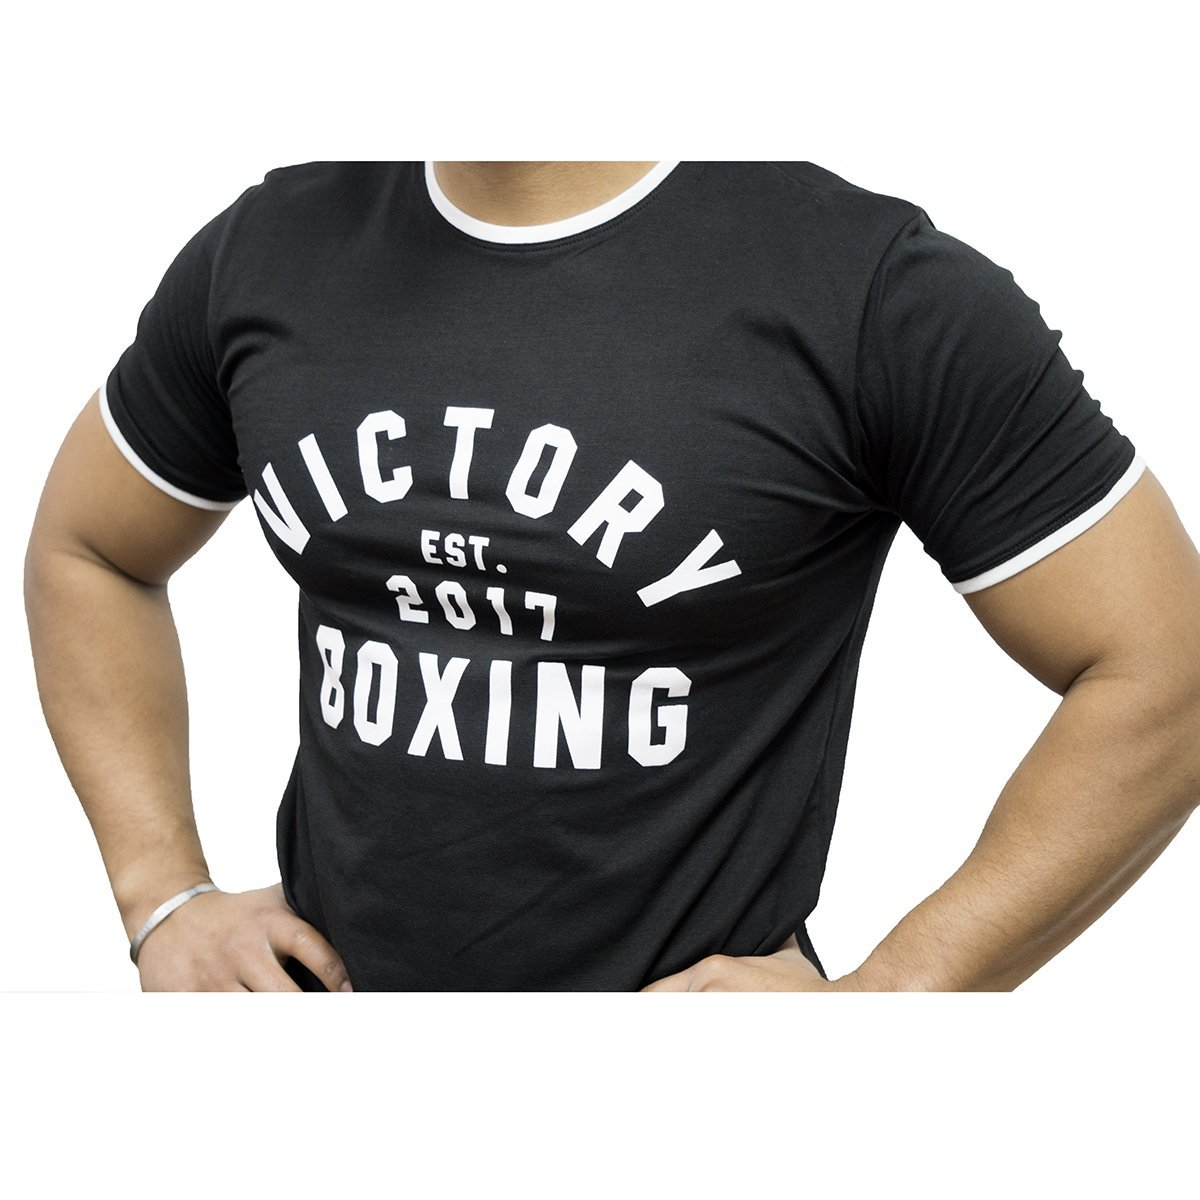 VICTORY SHIRT SLIM FIT BOXING '17 BLACK/WHITE - MSM FIGHT SHOPVICTORY FIGHT GEAR